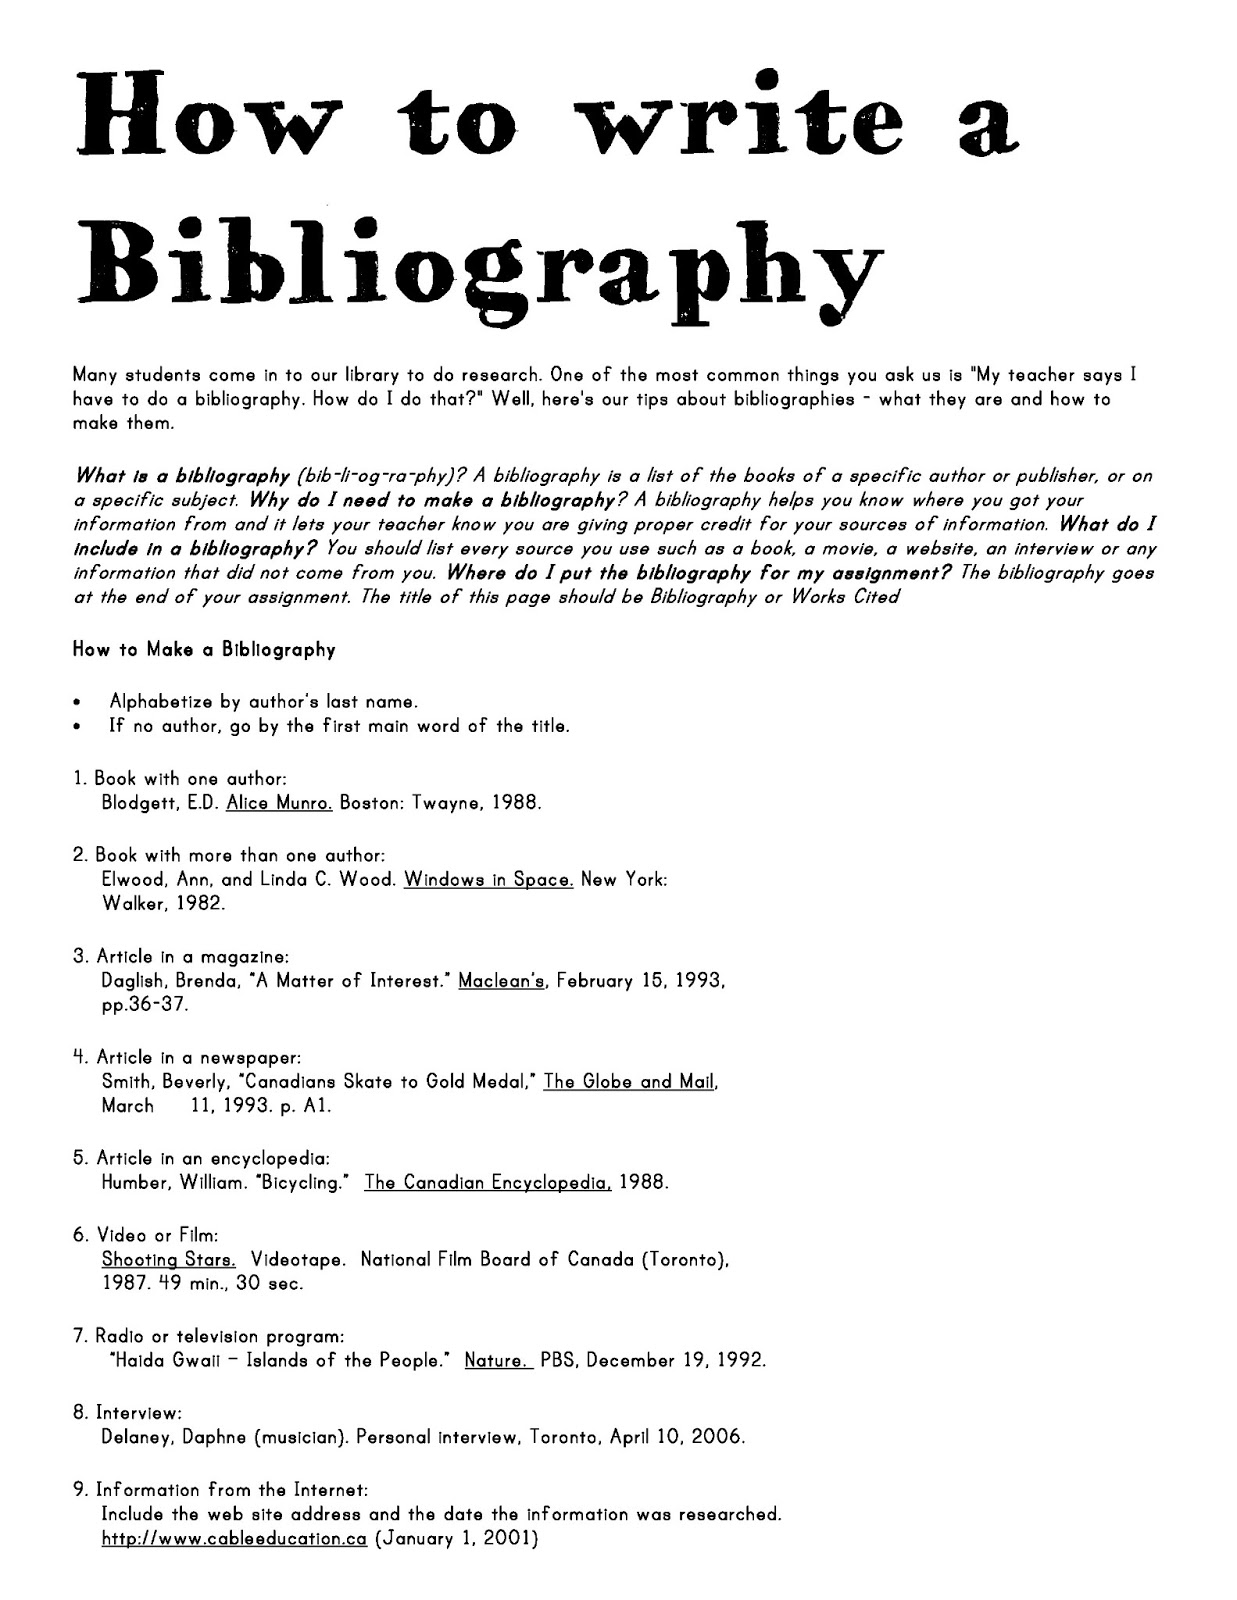 Write my annotated bibliography for me | Atlas Pharma LLC.